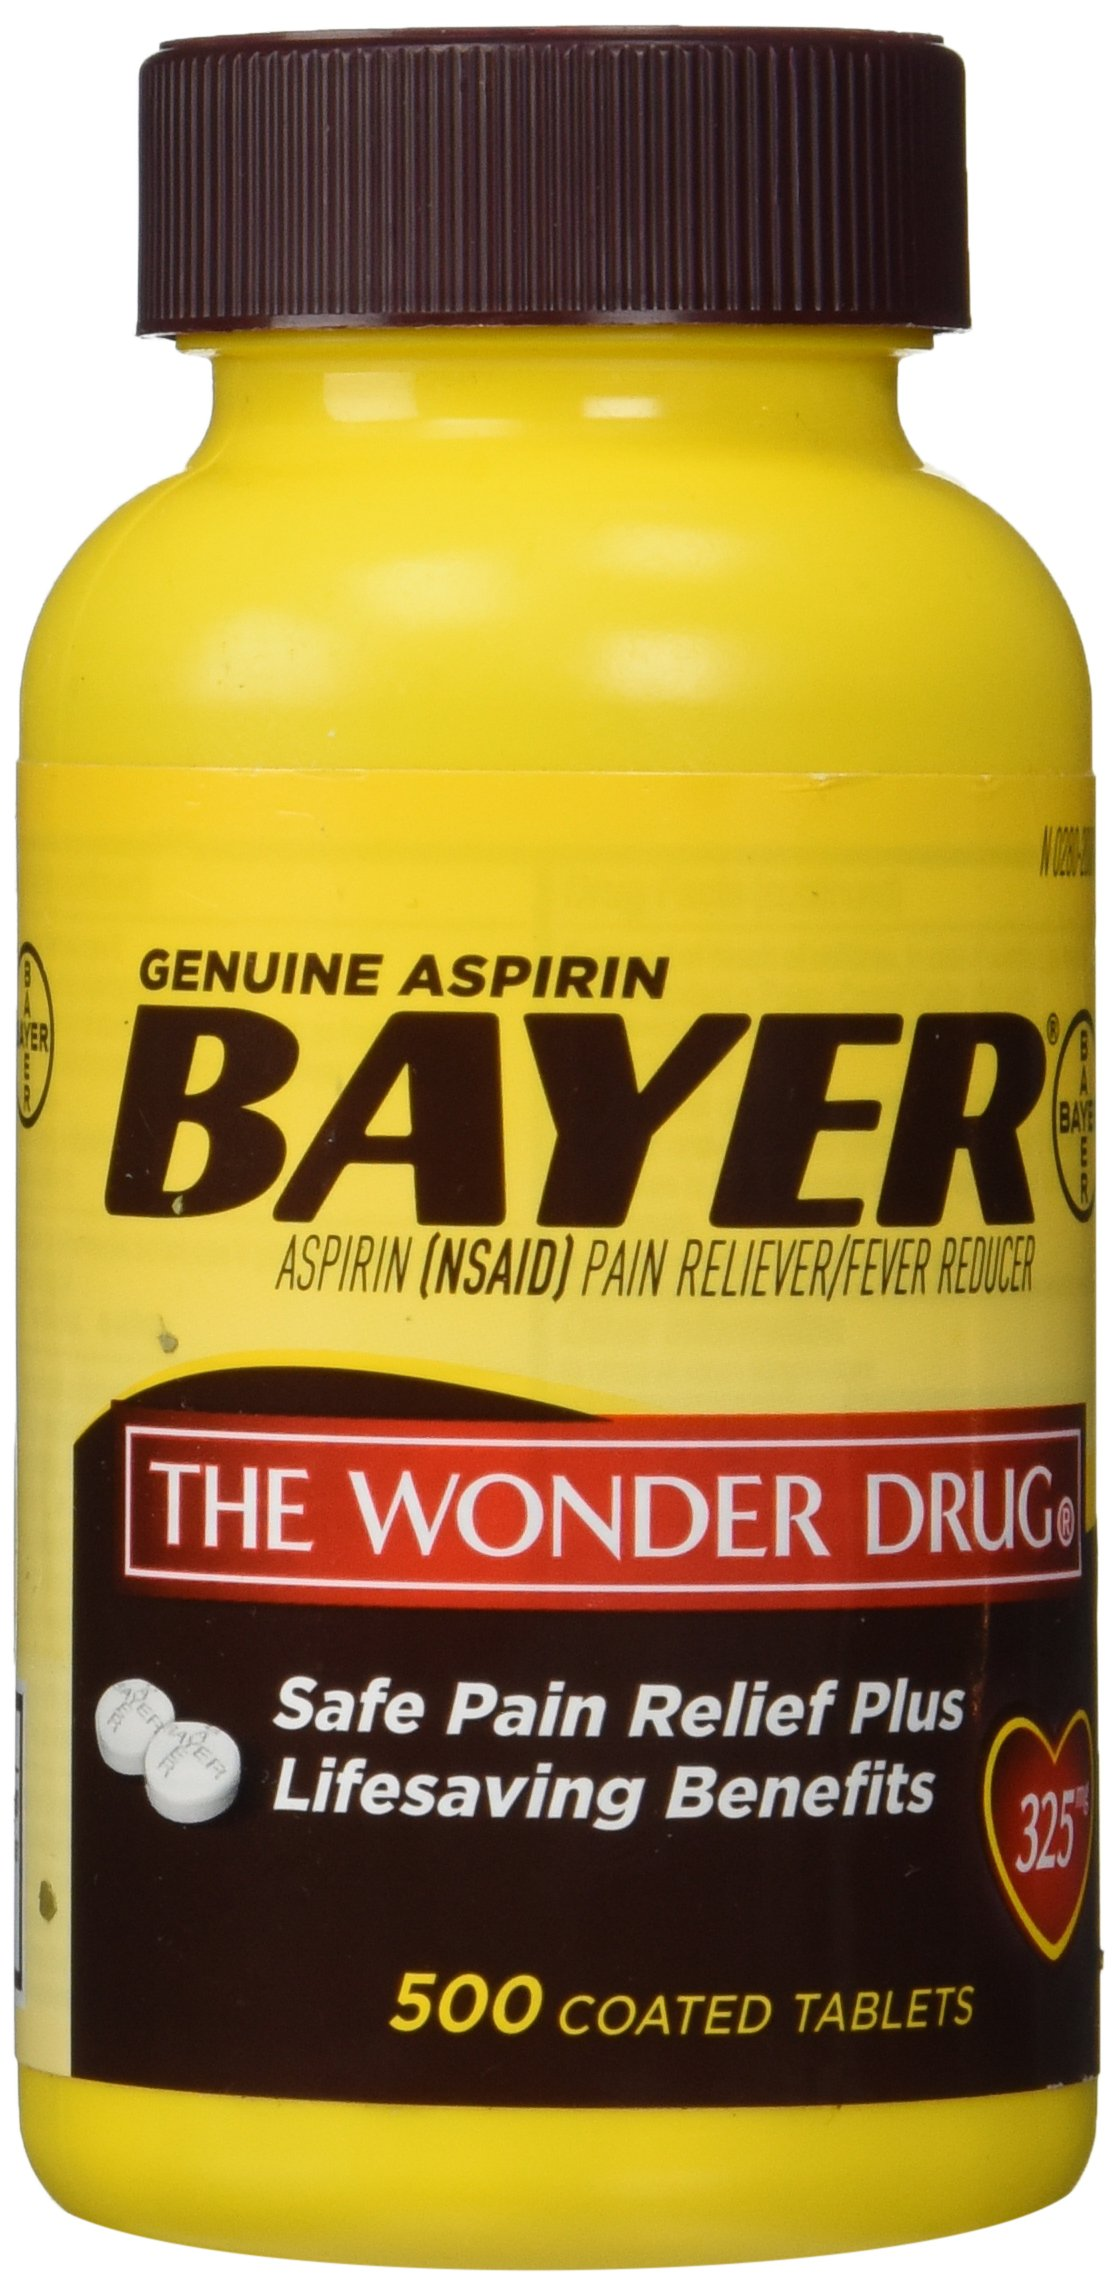 Genuine Bayer Aspirin (NSAID) Pain Reliever and Fever Reducer 325mg Per Tablet 500 Tablets per Bottle